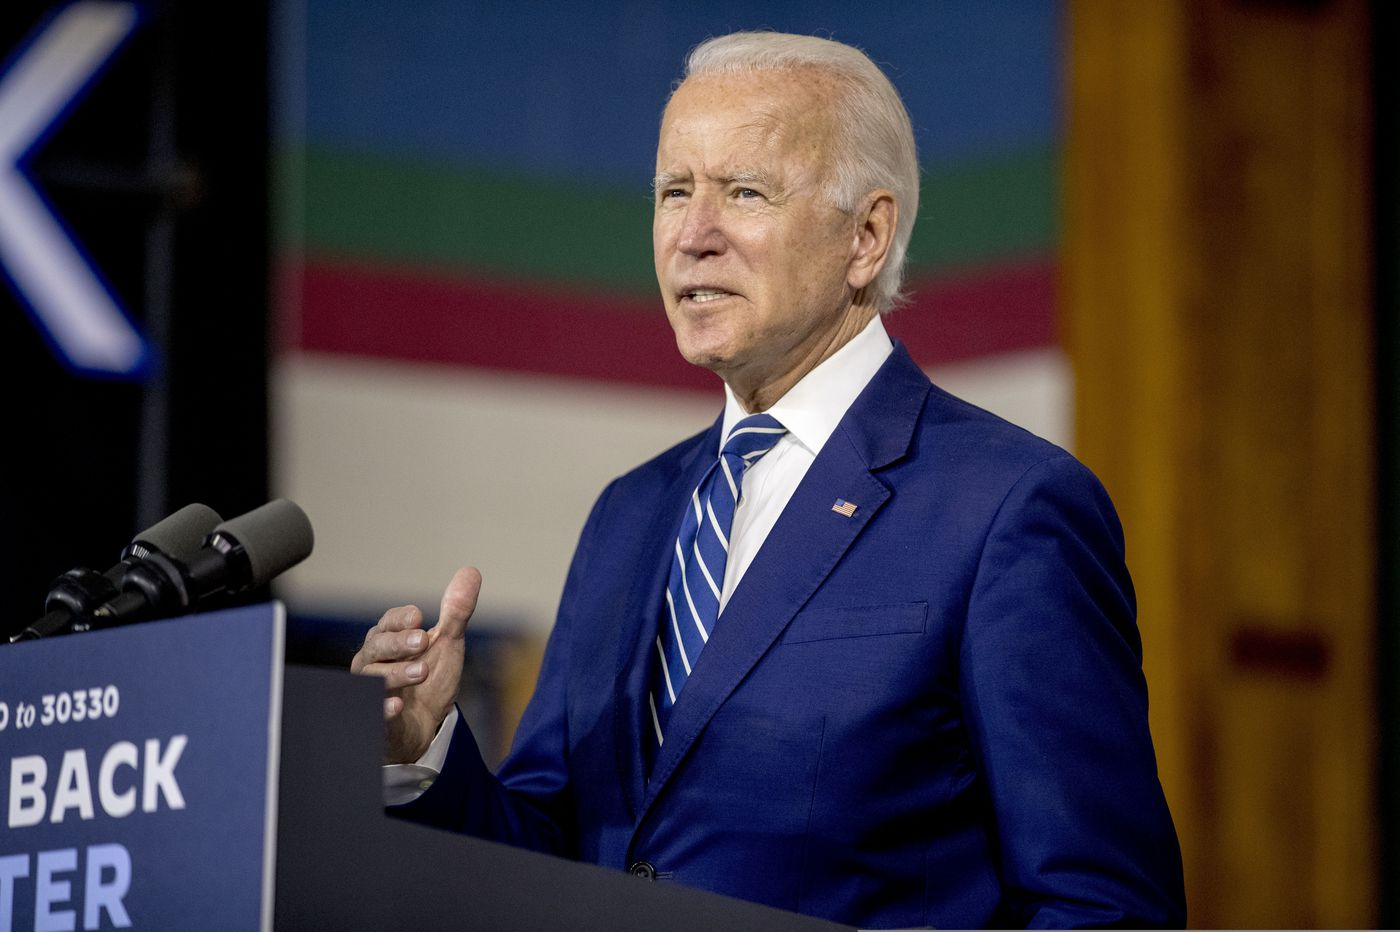 Joe Biden Adds More Pennsylvania Staffers For 2020 Campaign Against Trump